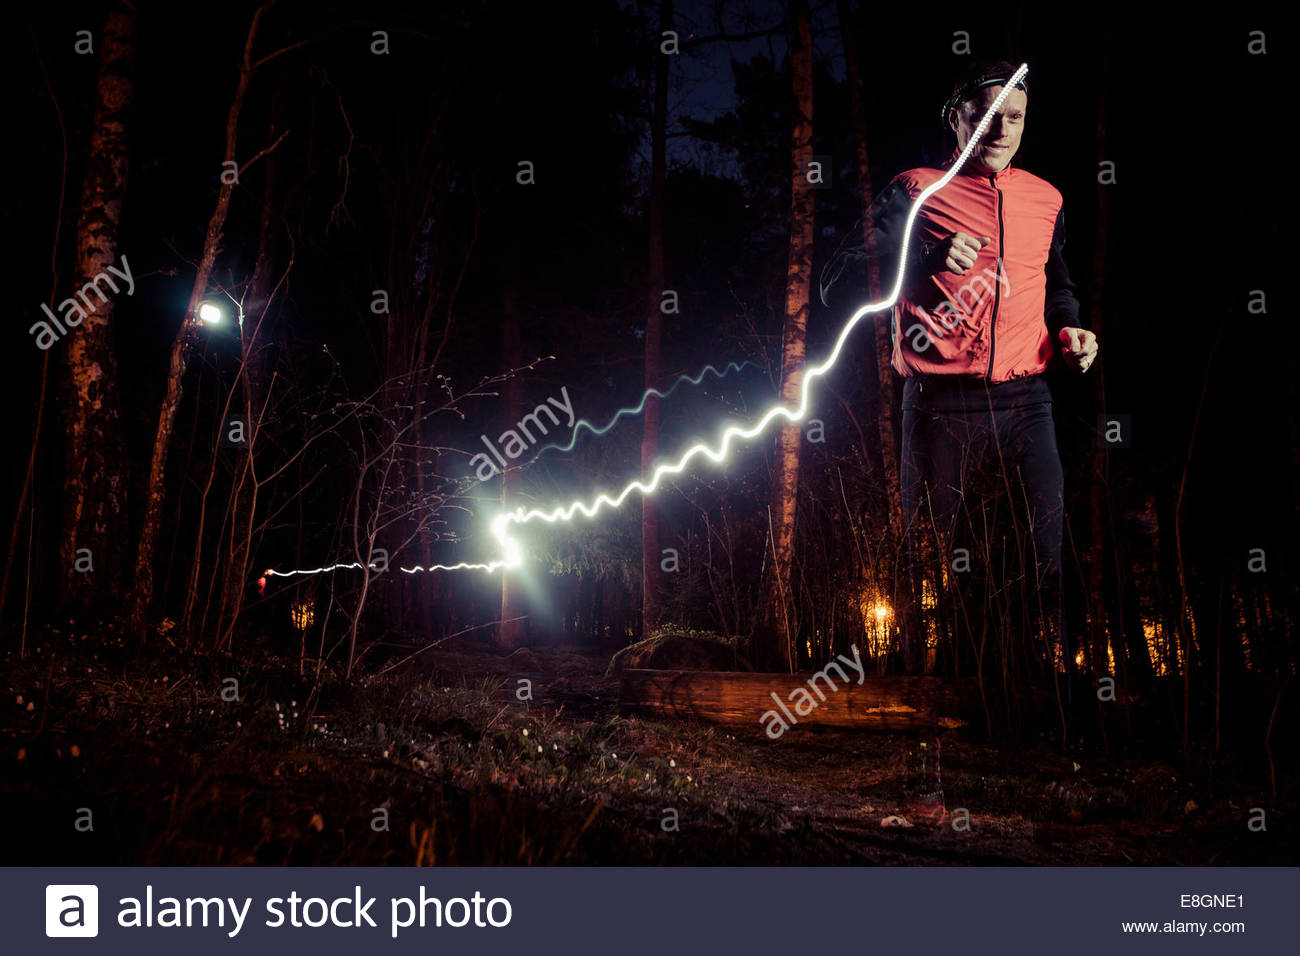 Man running with light trails in forest Stock Photo